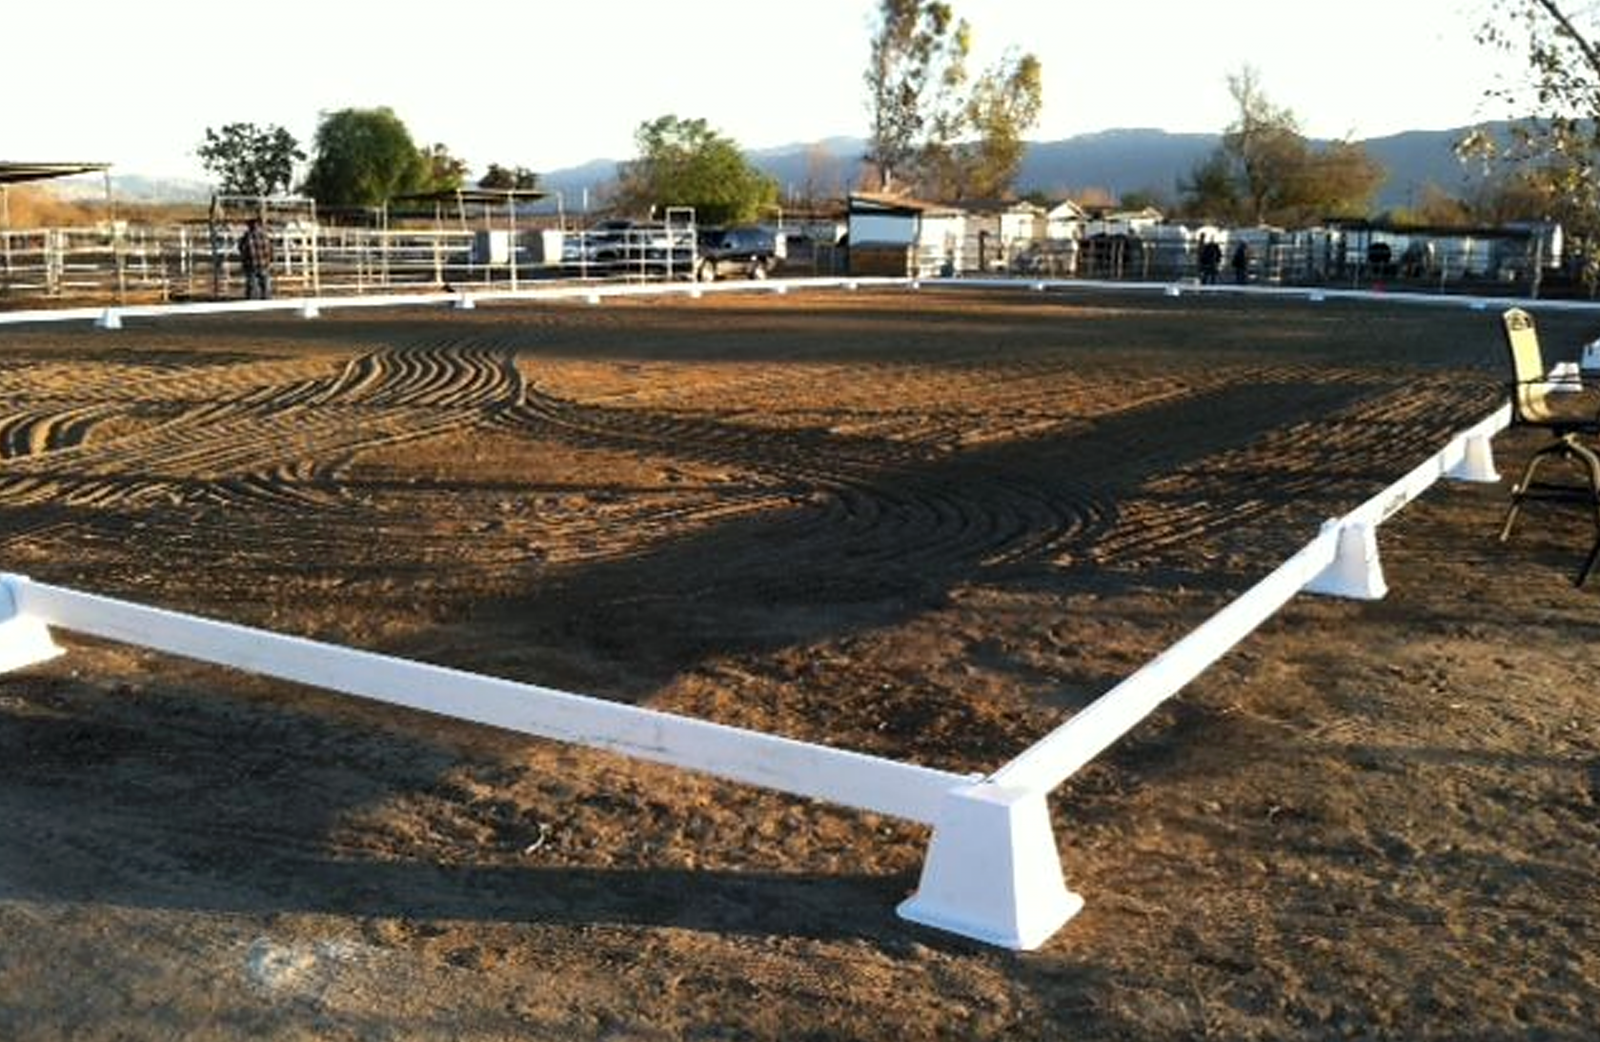 Prado Equestrian Center training corral.